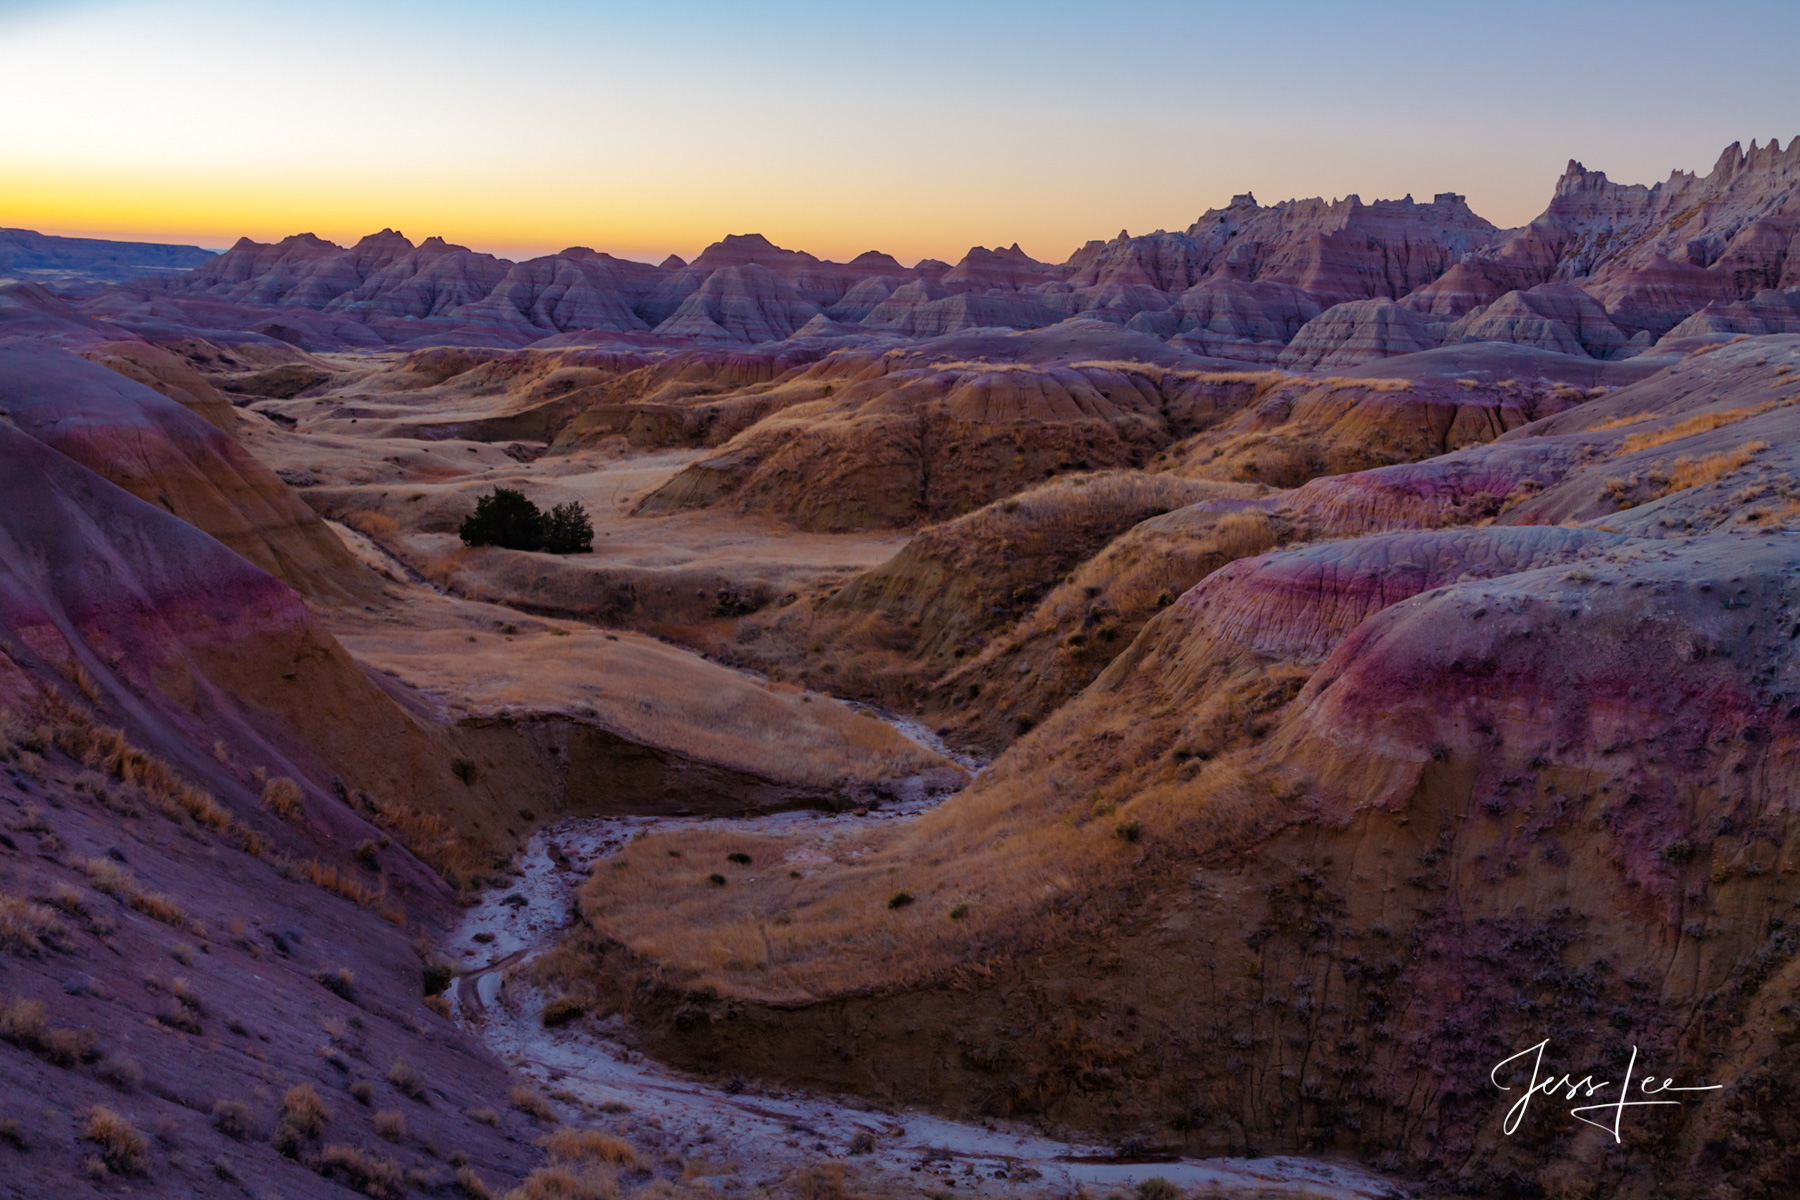 Locations, South Dakota, Large format, quality, museum, fine art, edition, high quality, high resolution, beautiful, artistic, landscape, photo